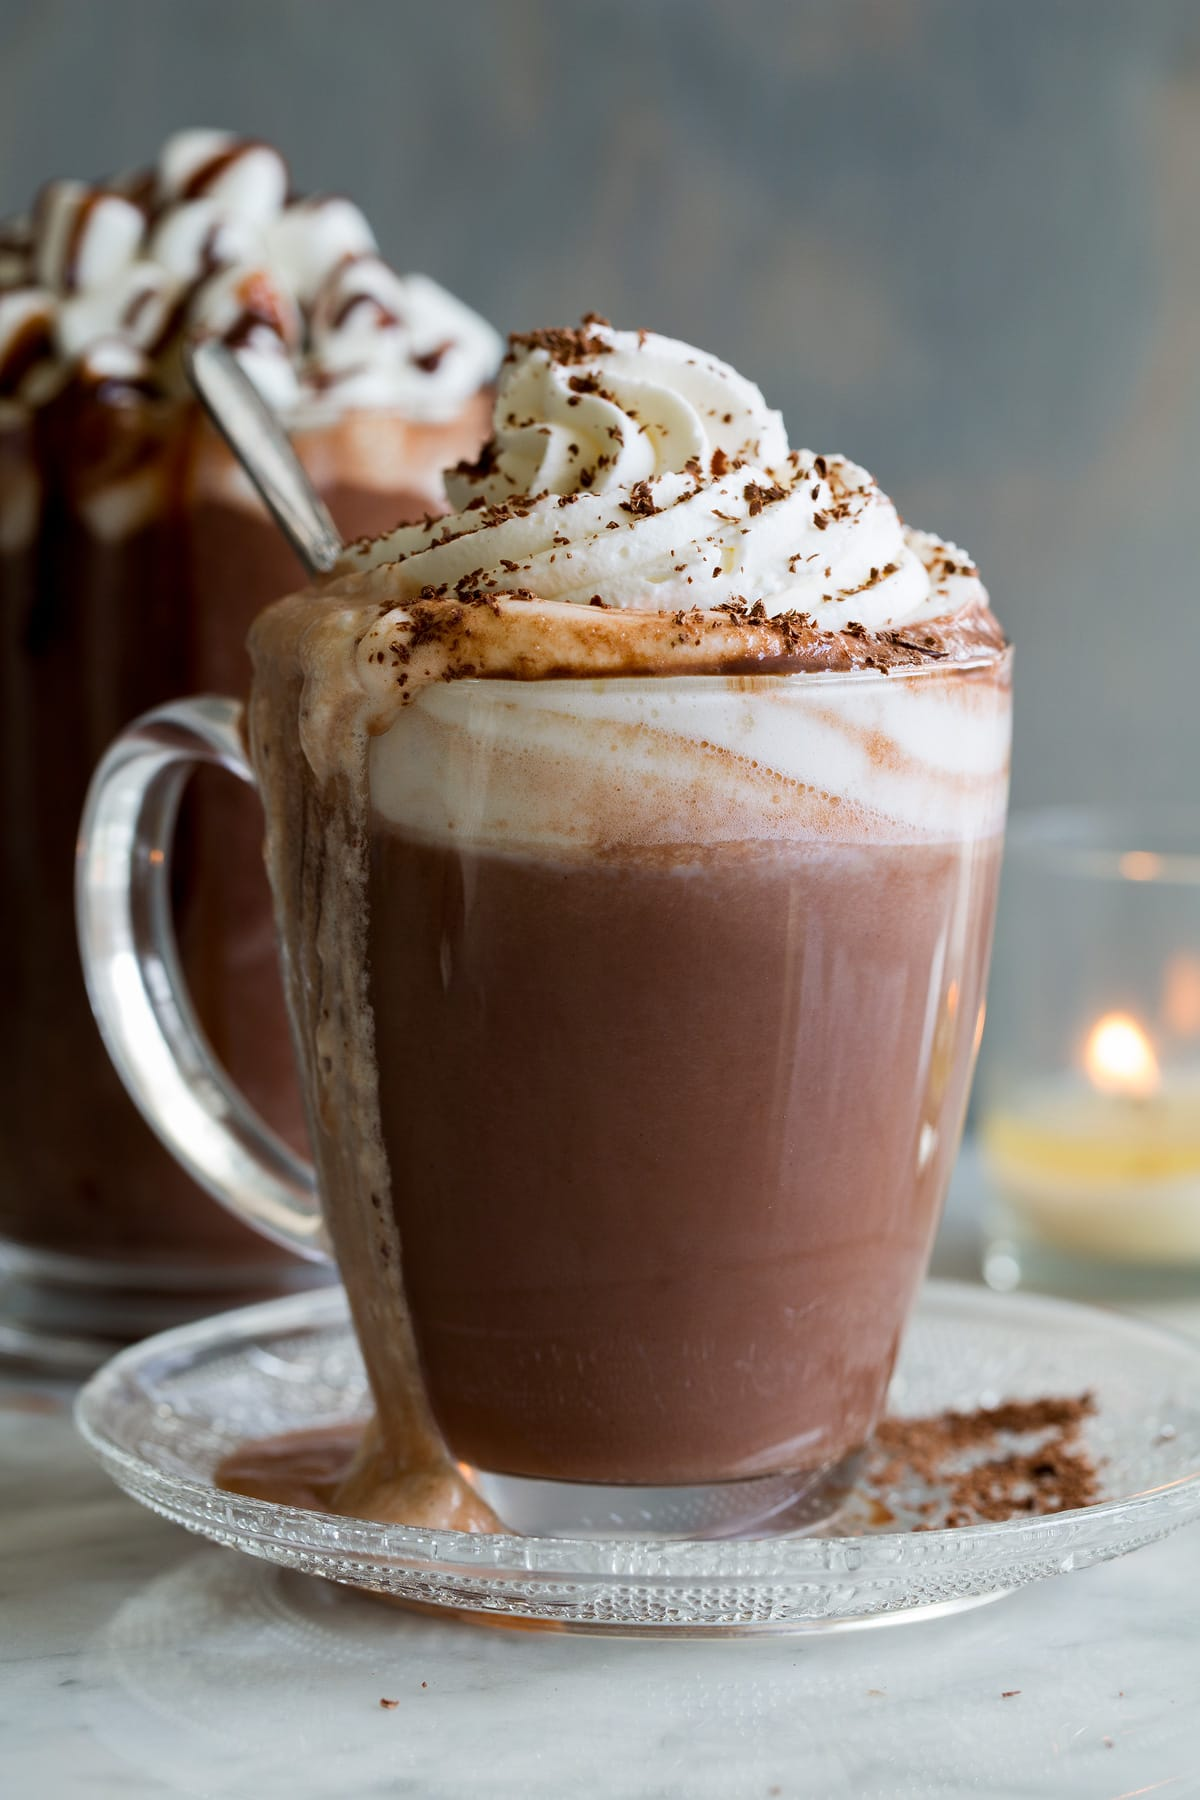 Hot Chocolate shown here in a glass mug with whipped cream and chocolate shavings on top